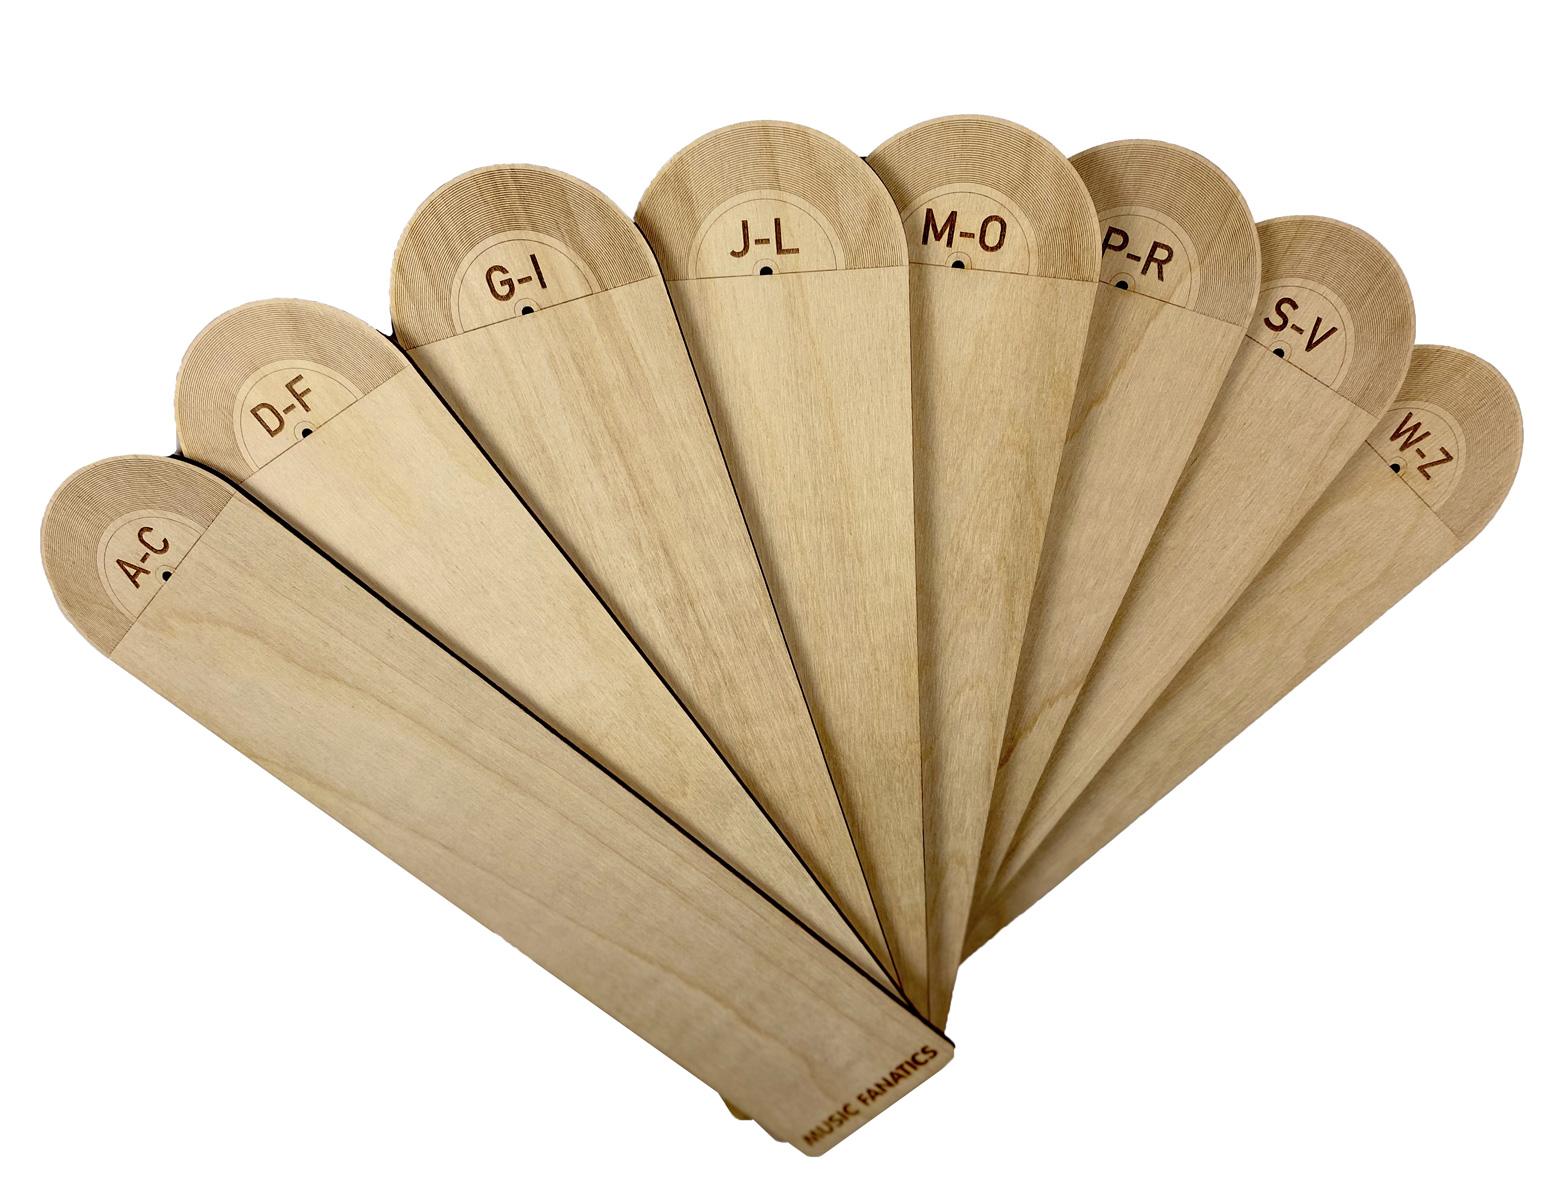 Record Dividers set of 8 in fan display